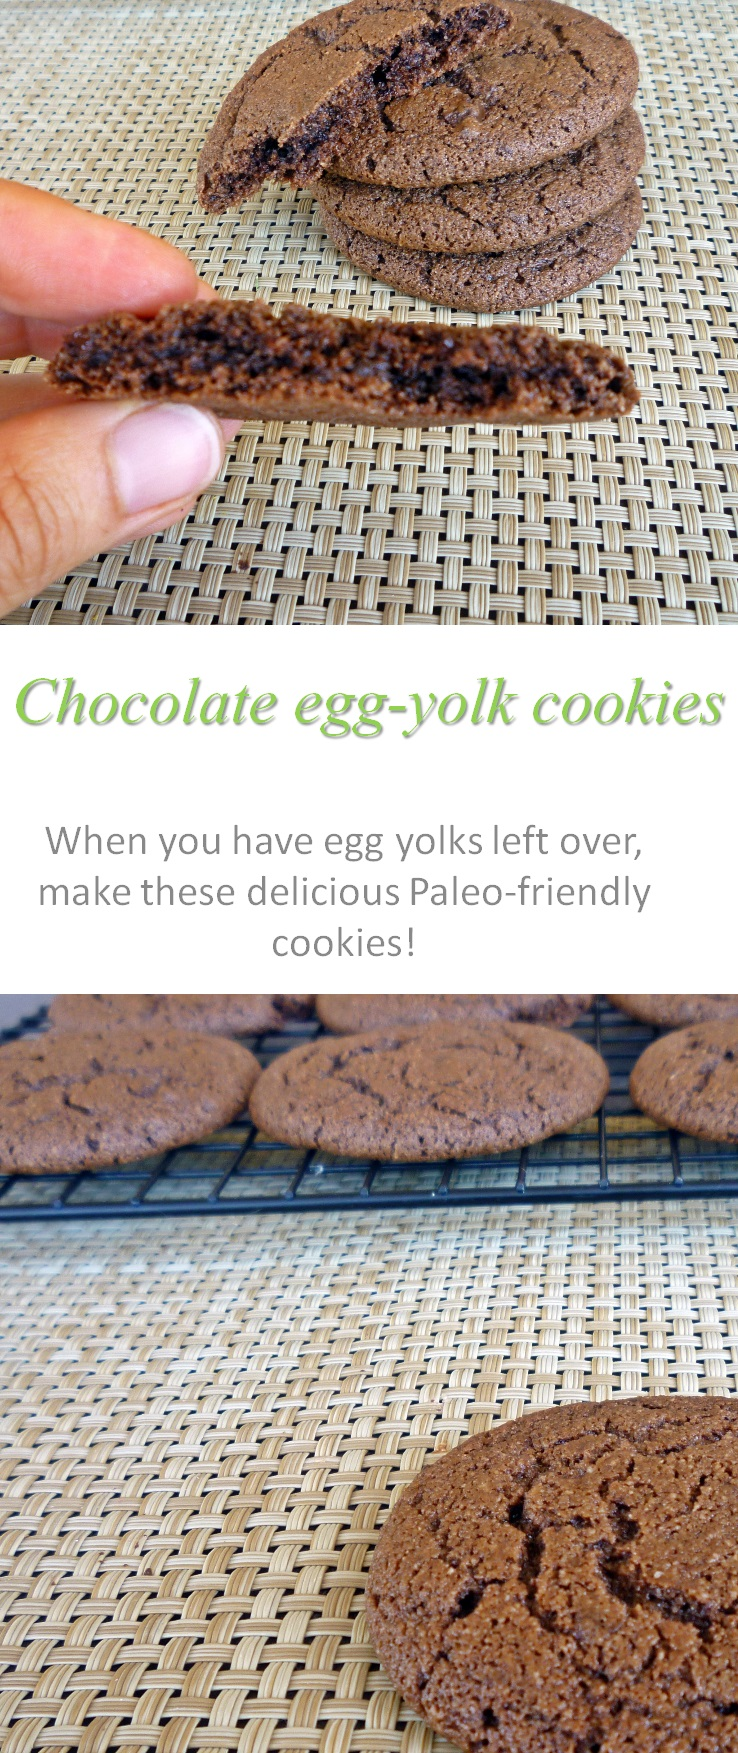 A delicious way to use up extra egg yolks - this Paleo-friendly chocolate egg yolk cookie recipe will leave you wanting more! #cookies